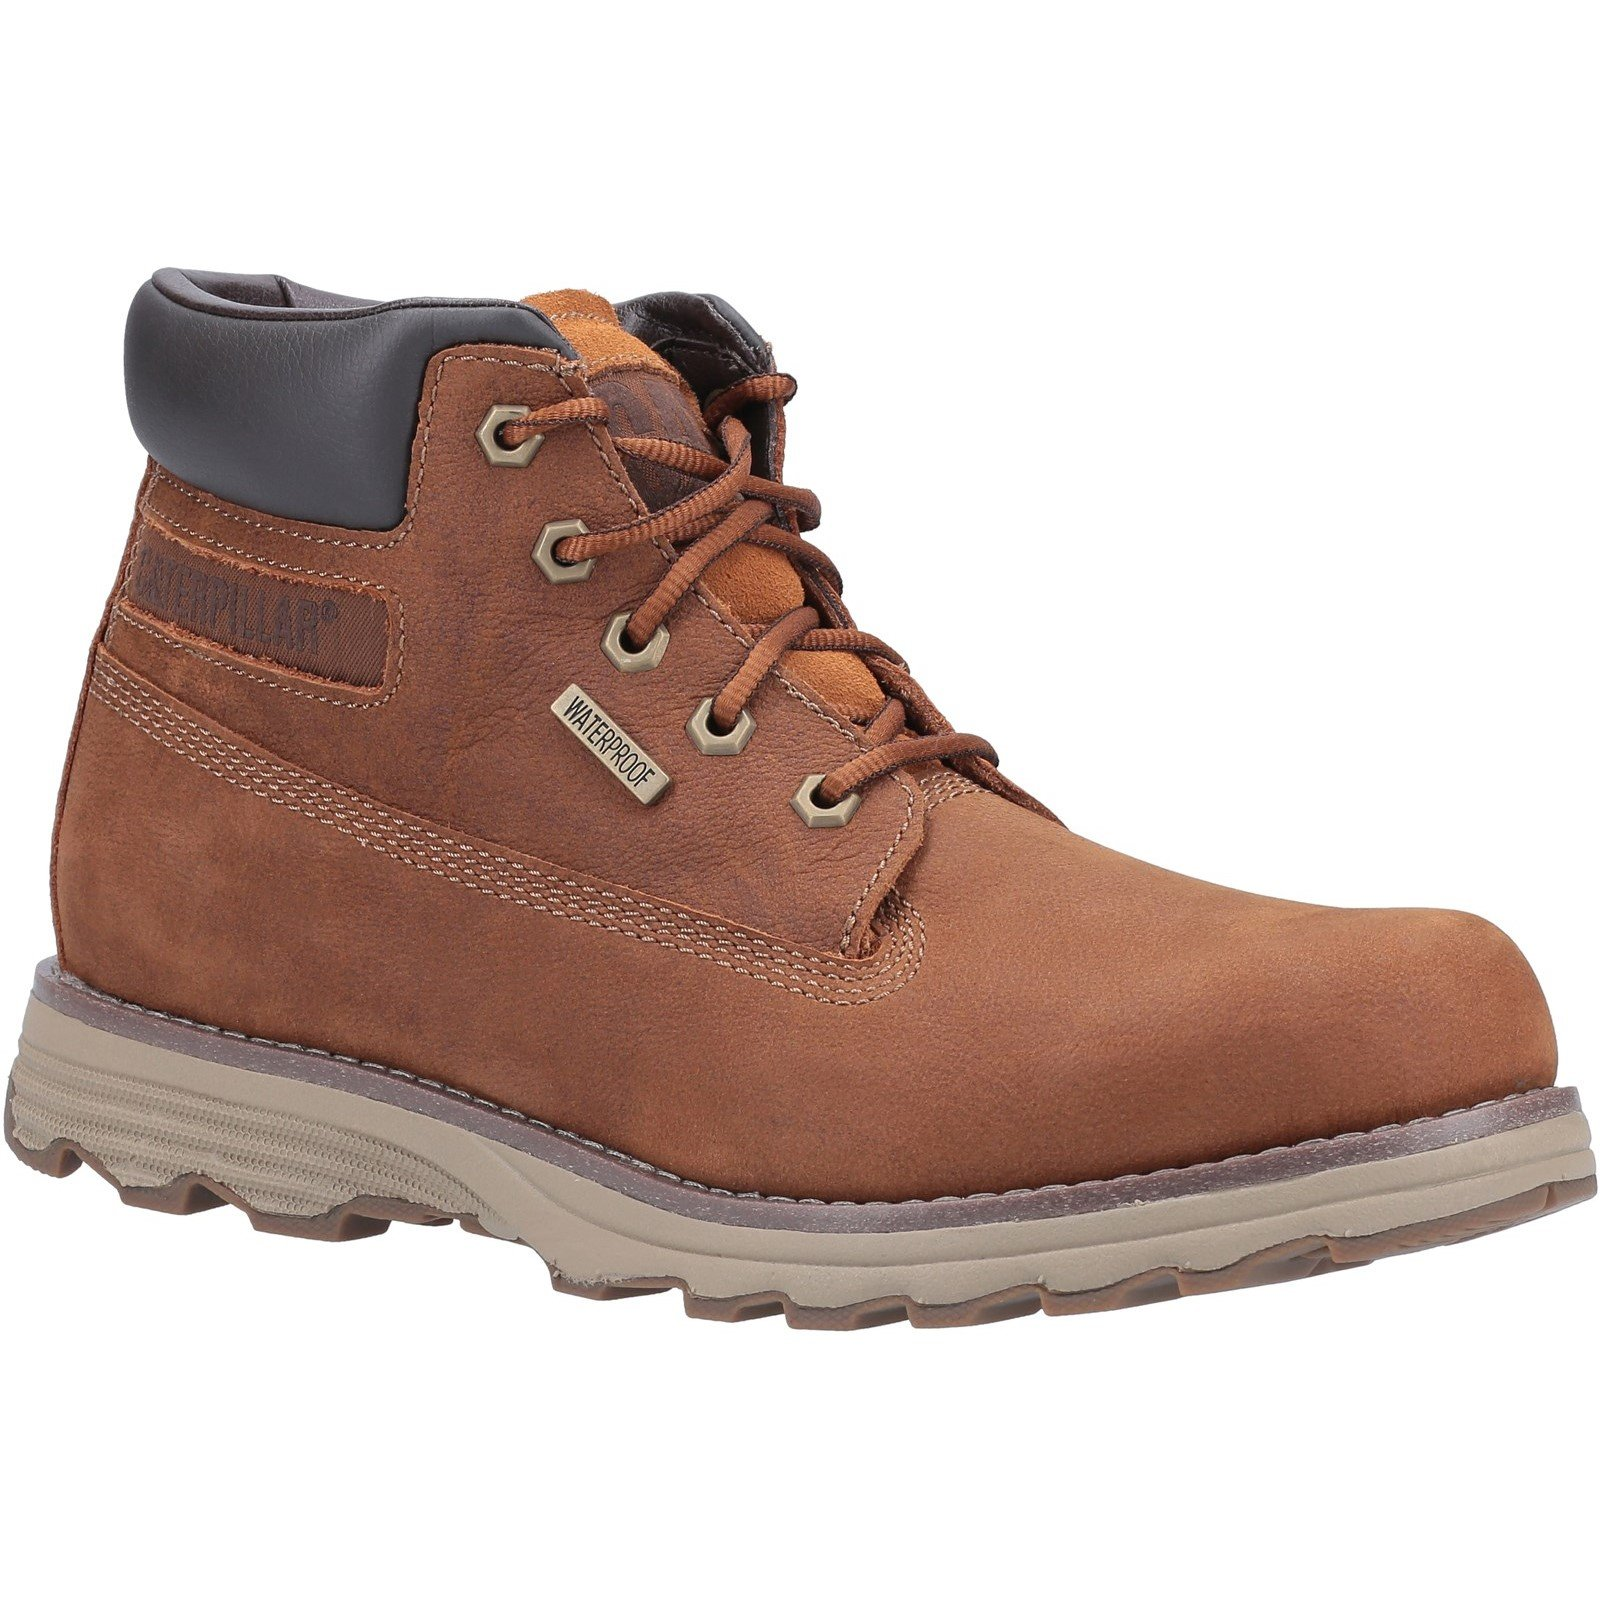 CAT Lifestyle Men's Founder WP TX Lace Up Boot 31487-53851 - Danish Brown 7